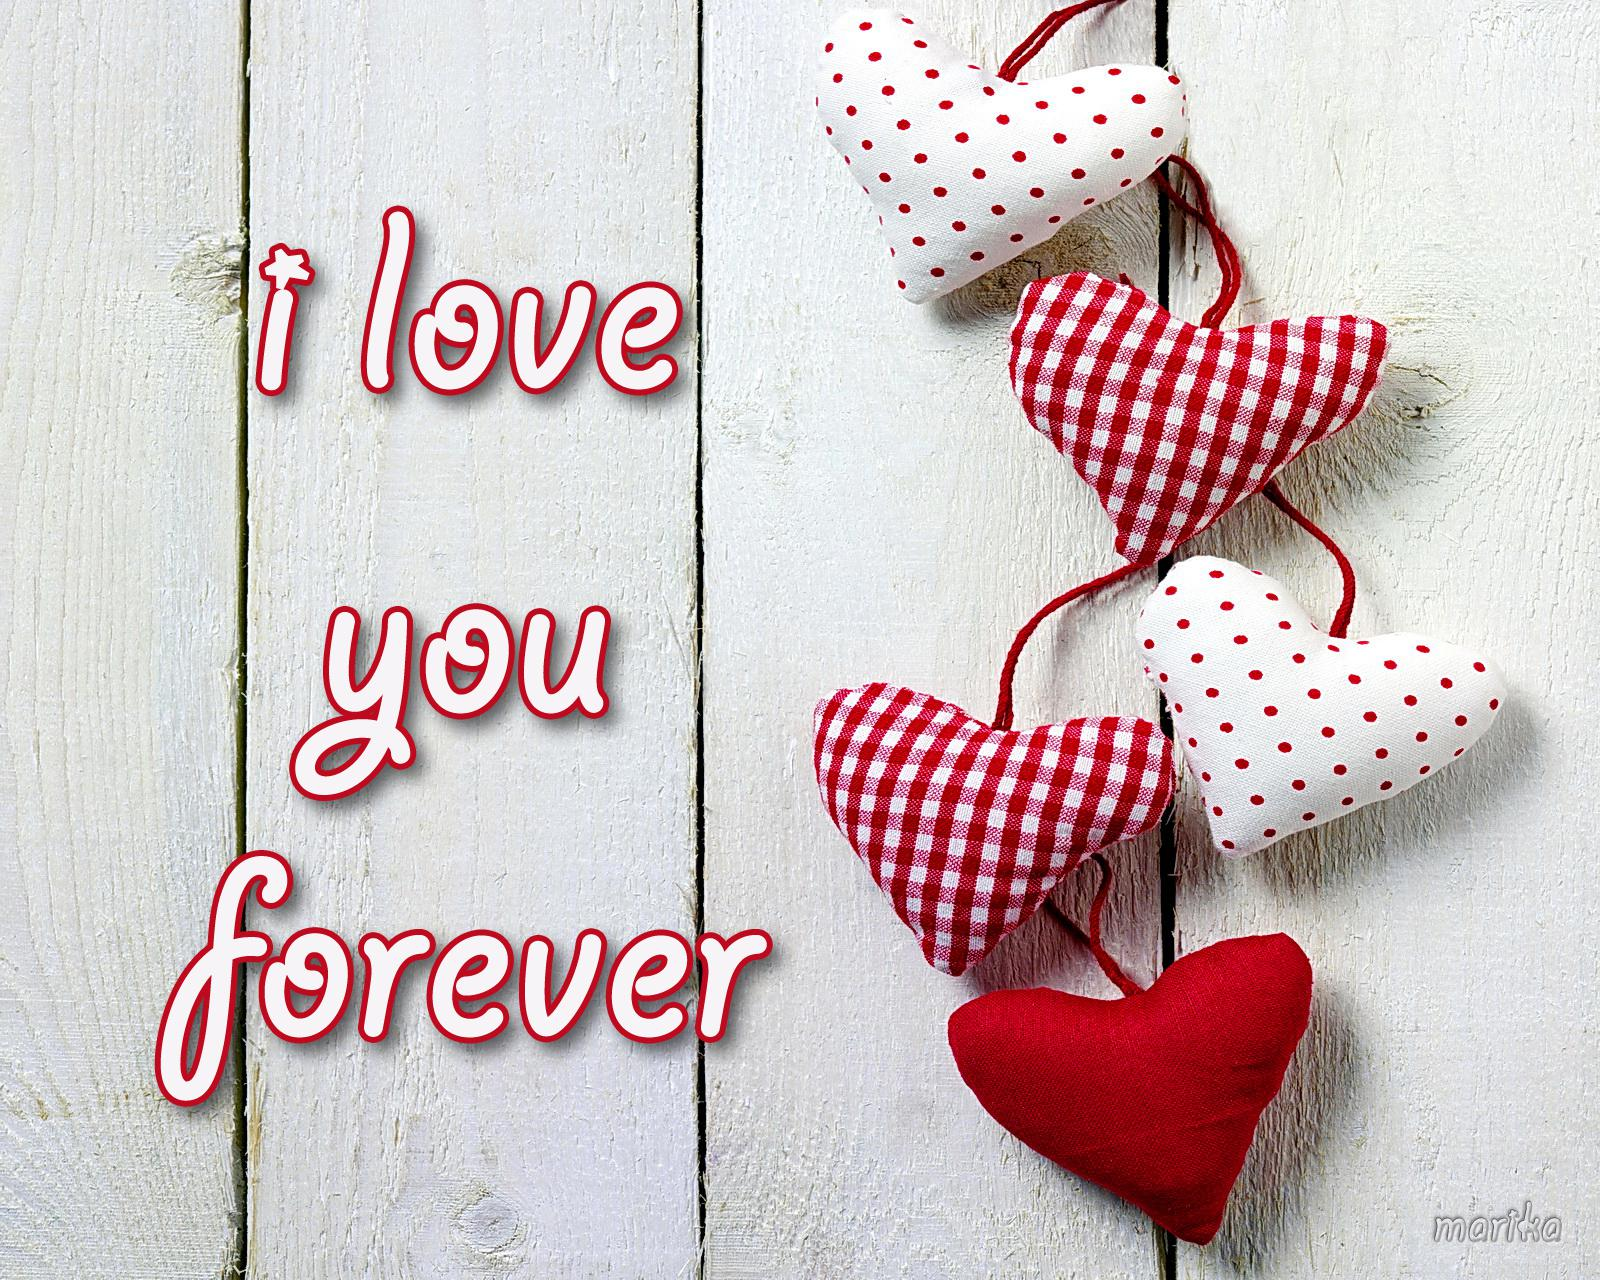 I Love You Wallpaper Free Download HD